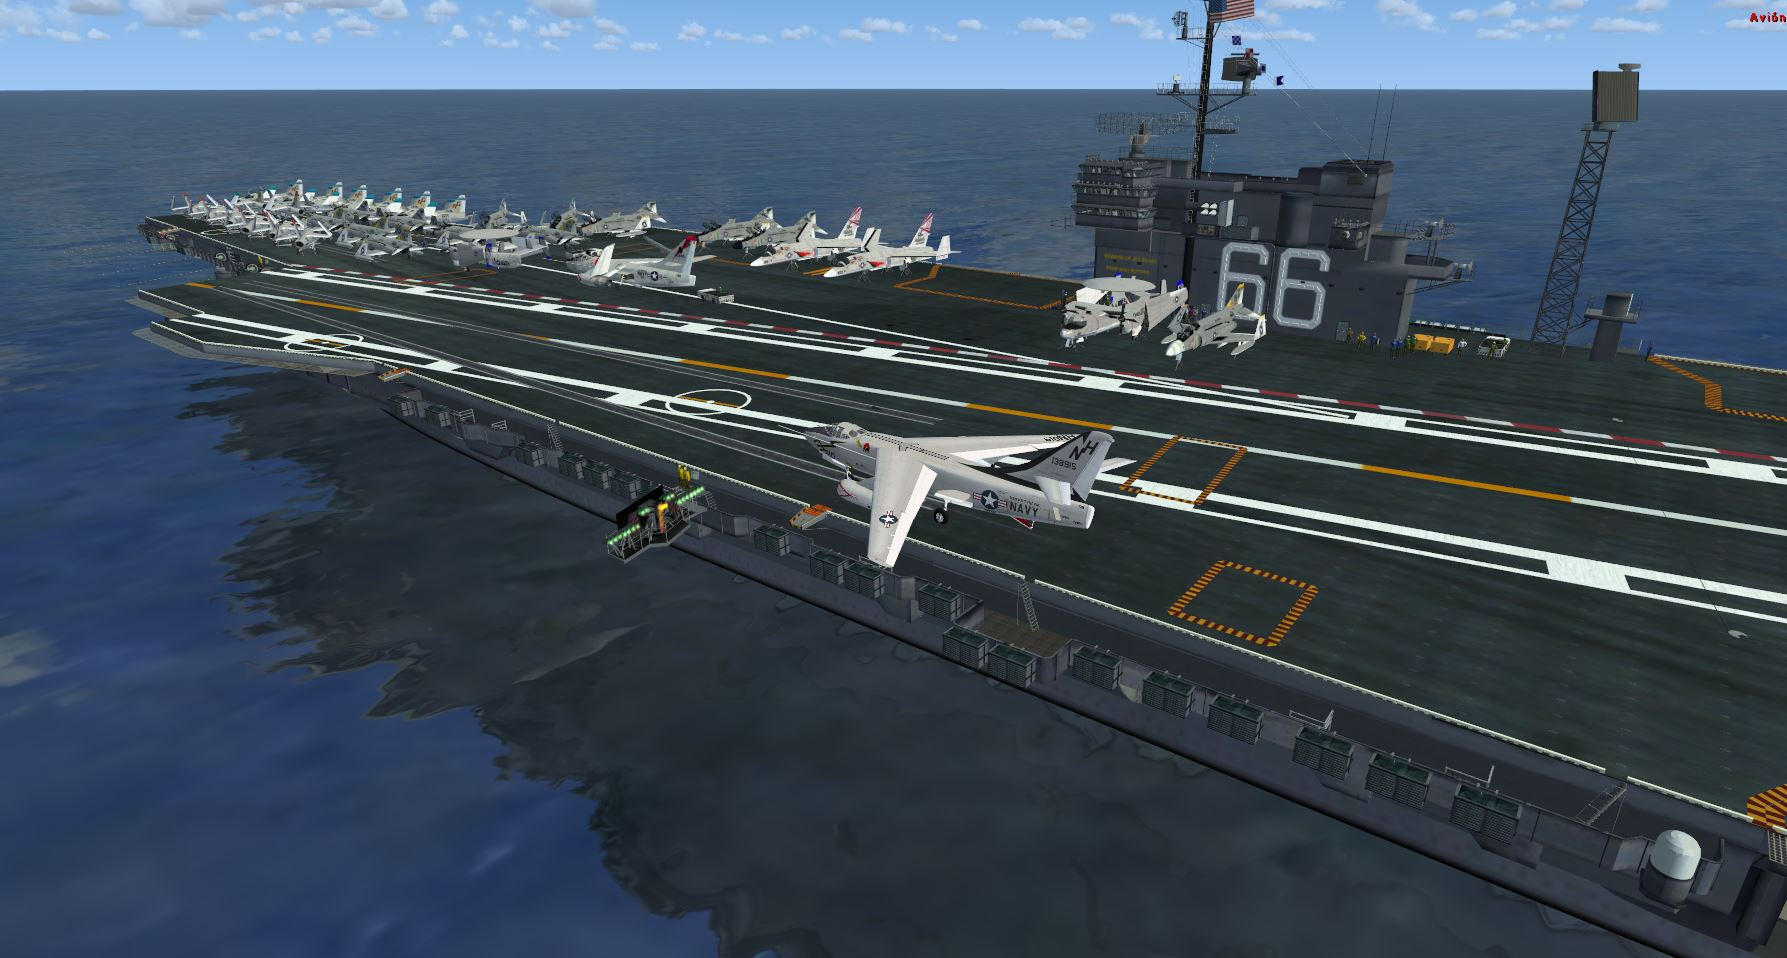 CIMOGT - KITTY HAWK CLASS AIRCRAFT CARRIER 小鹰号航空母舰 FSX P3D